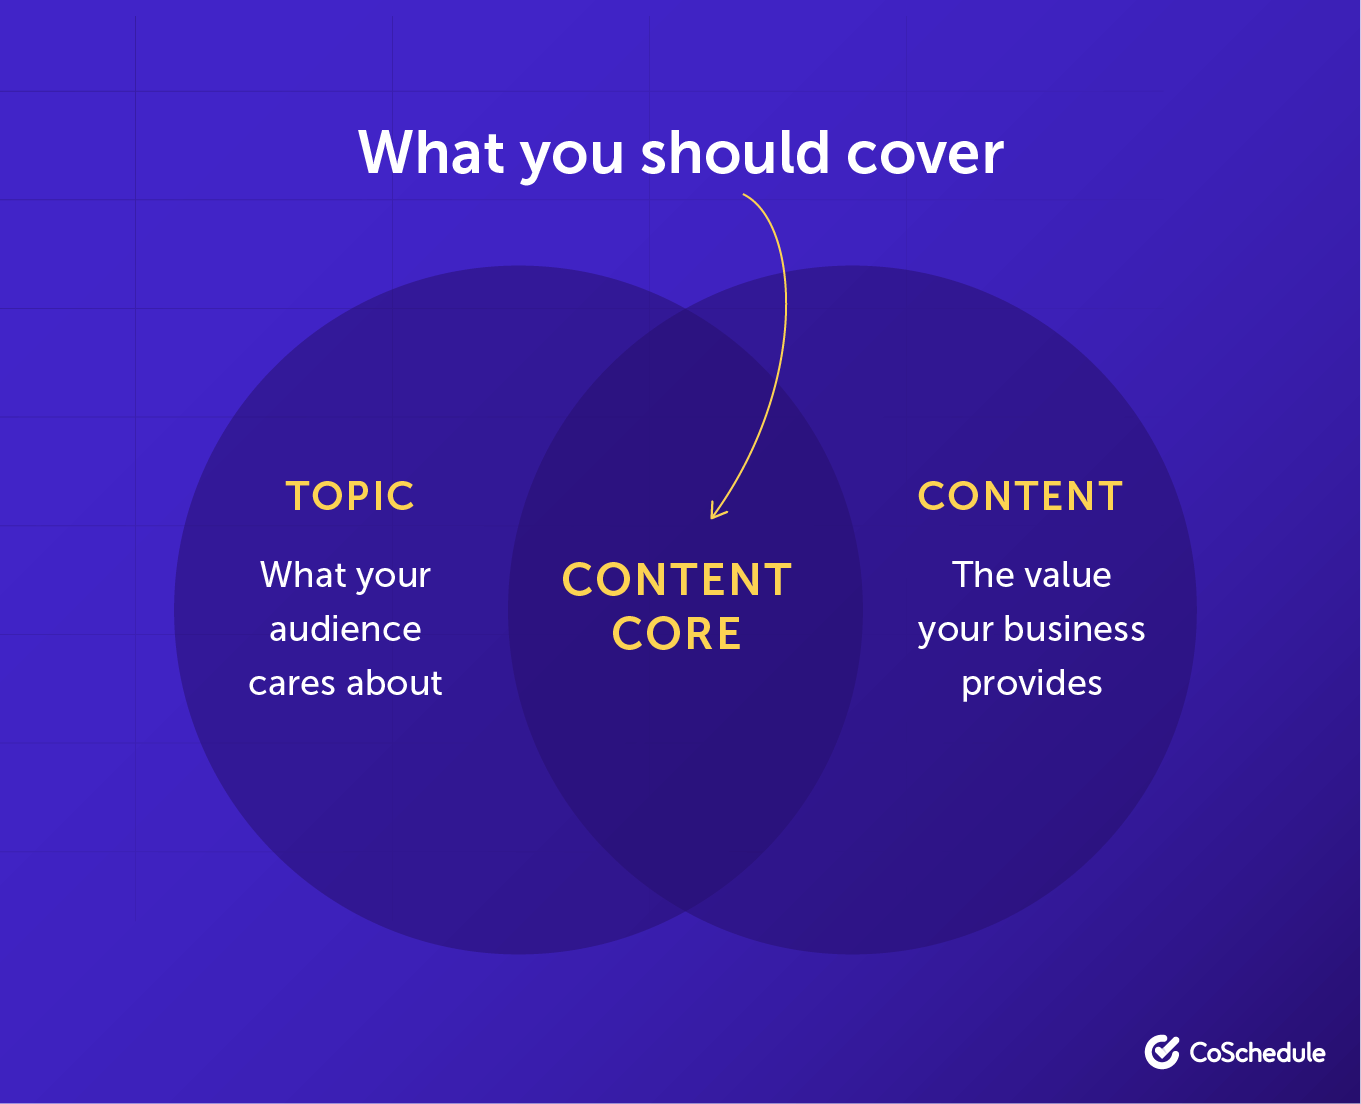 What your content should cover